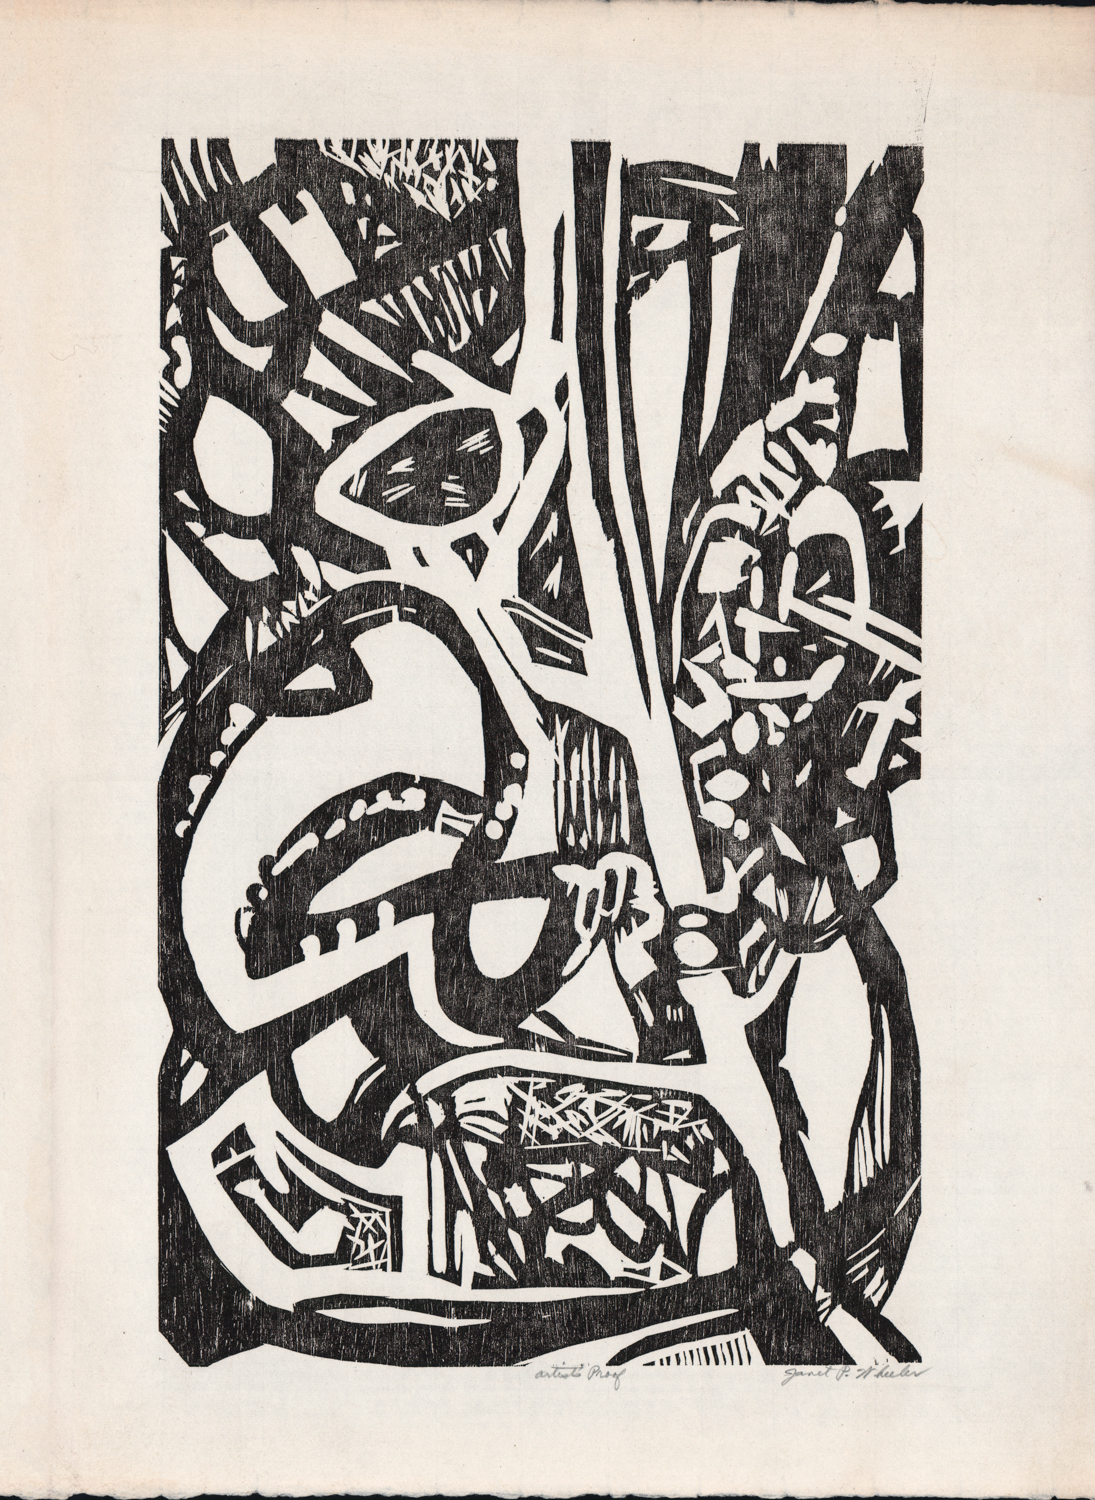 Untitled (Black Abstract 2) - Lithograph? - 22